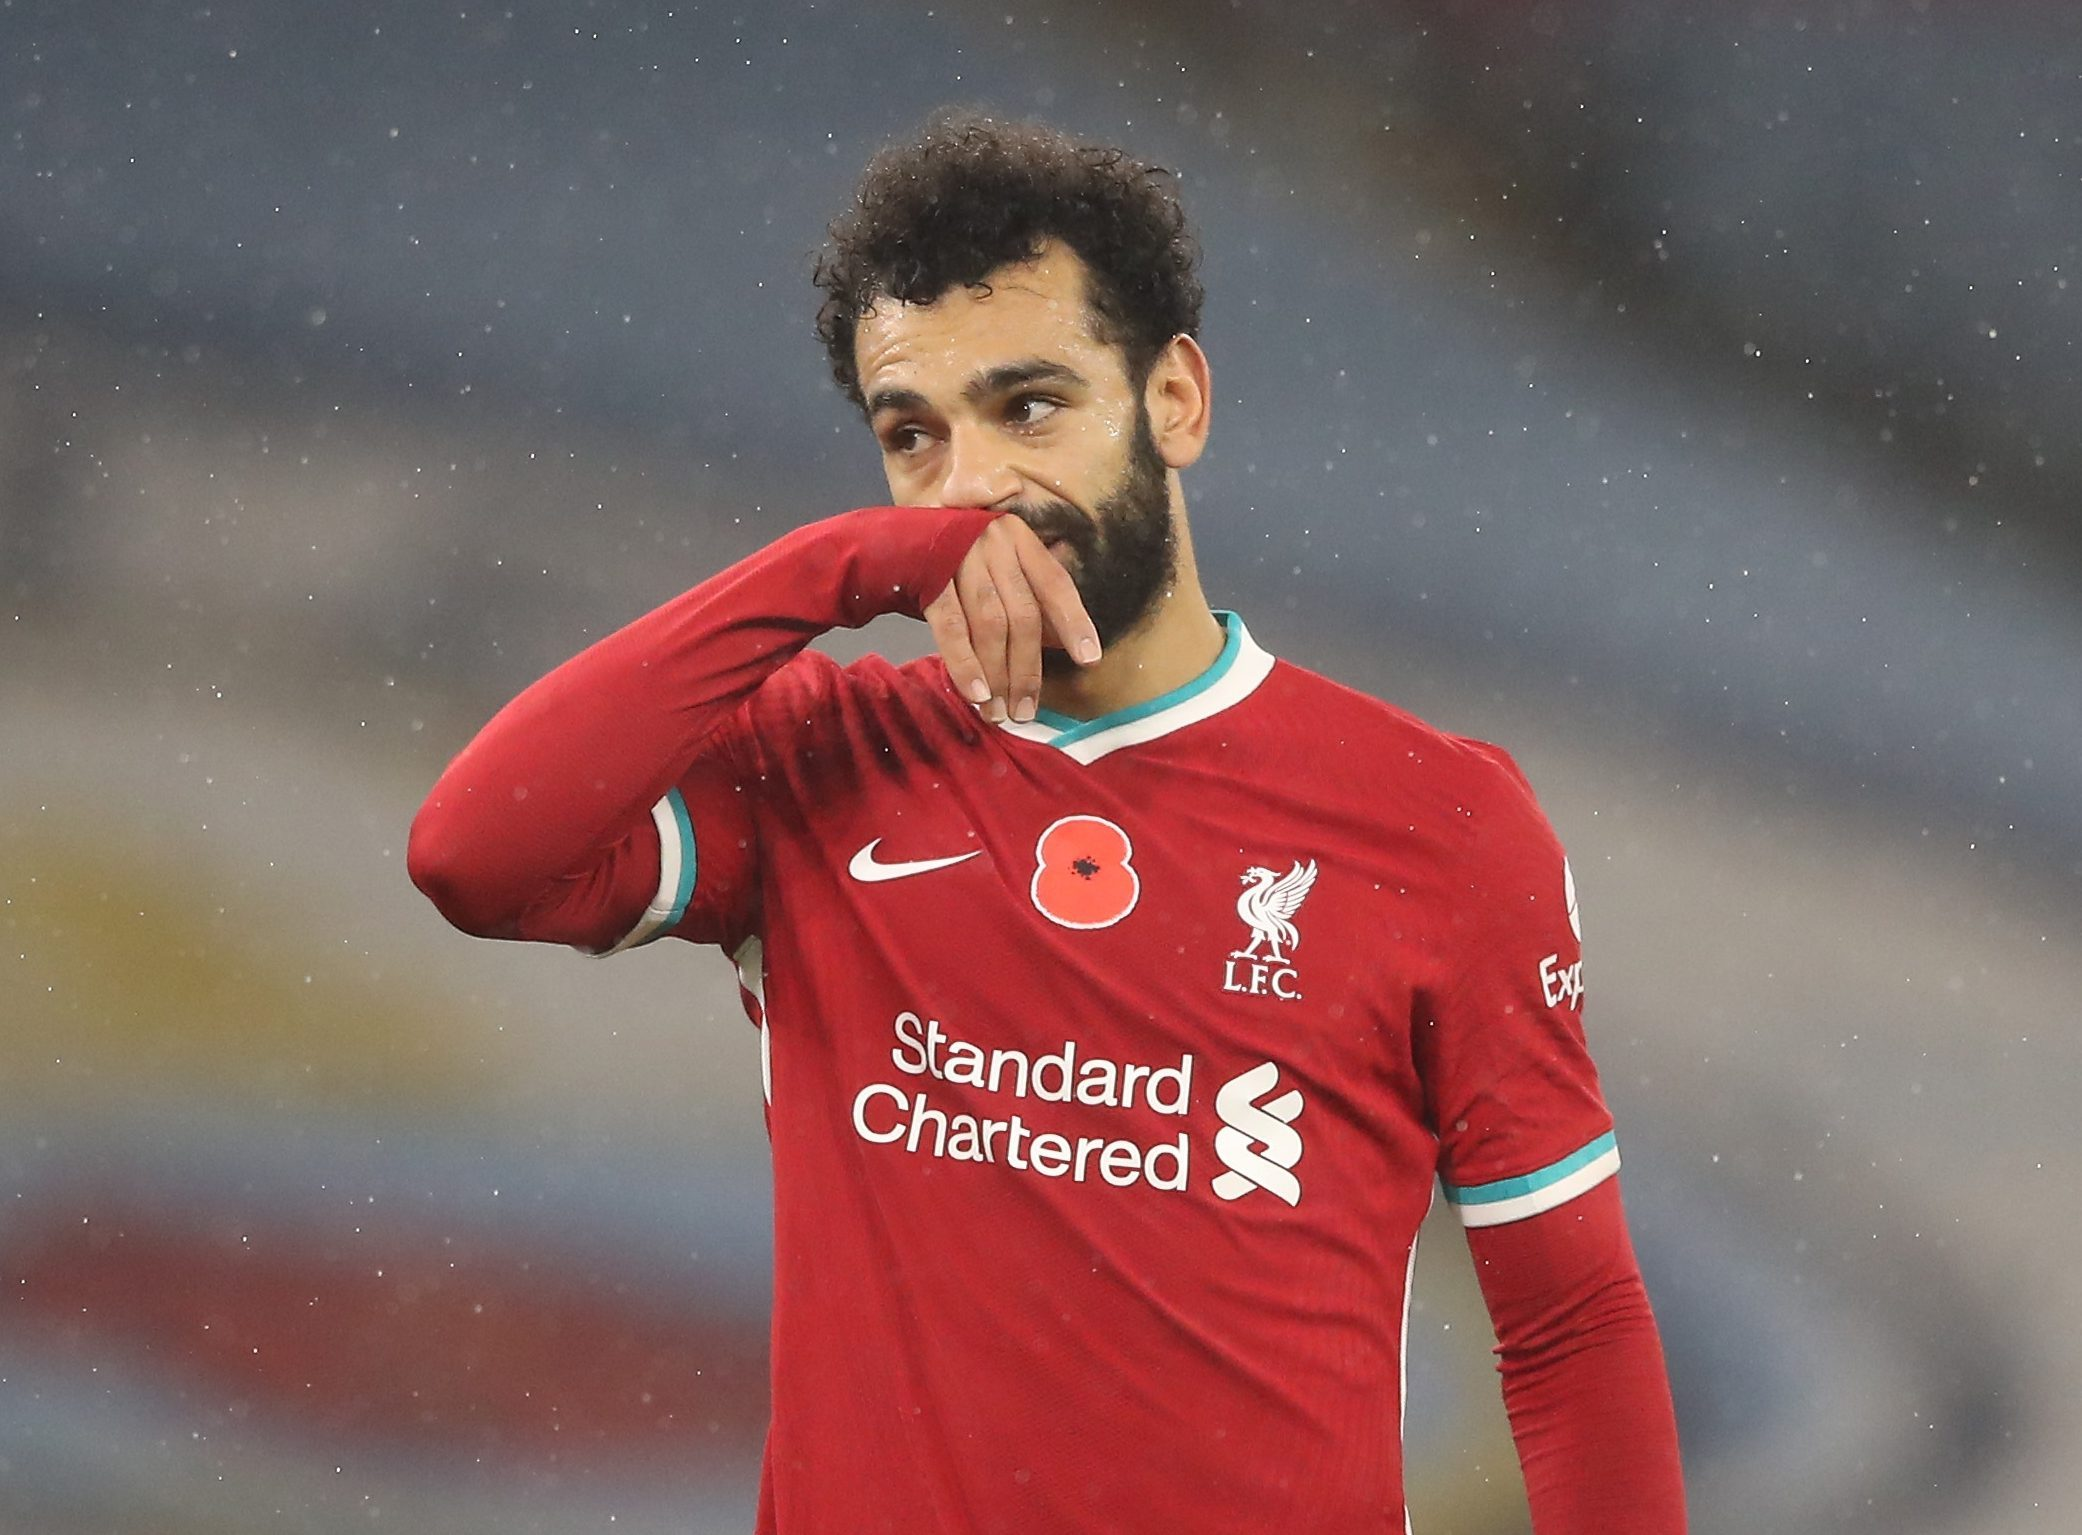 Mohamed Salah will not be in the Liverpool squad against Leicester